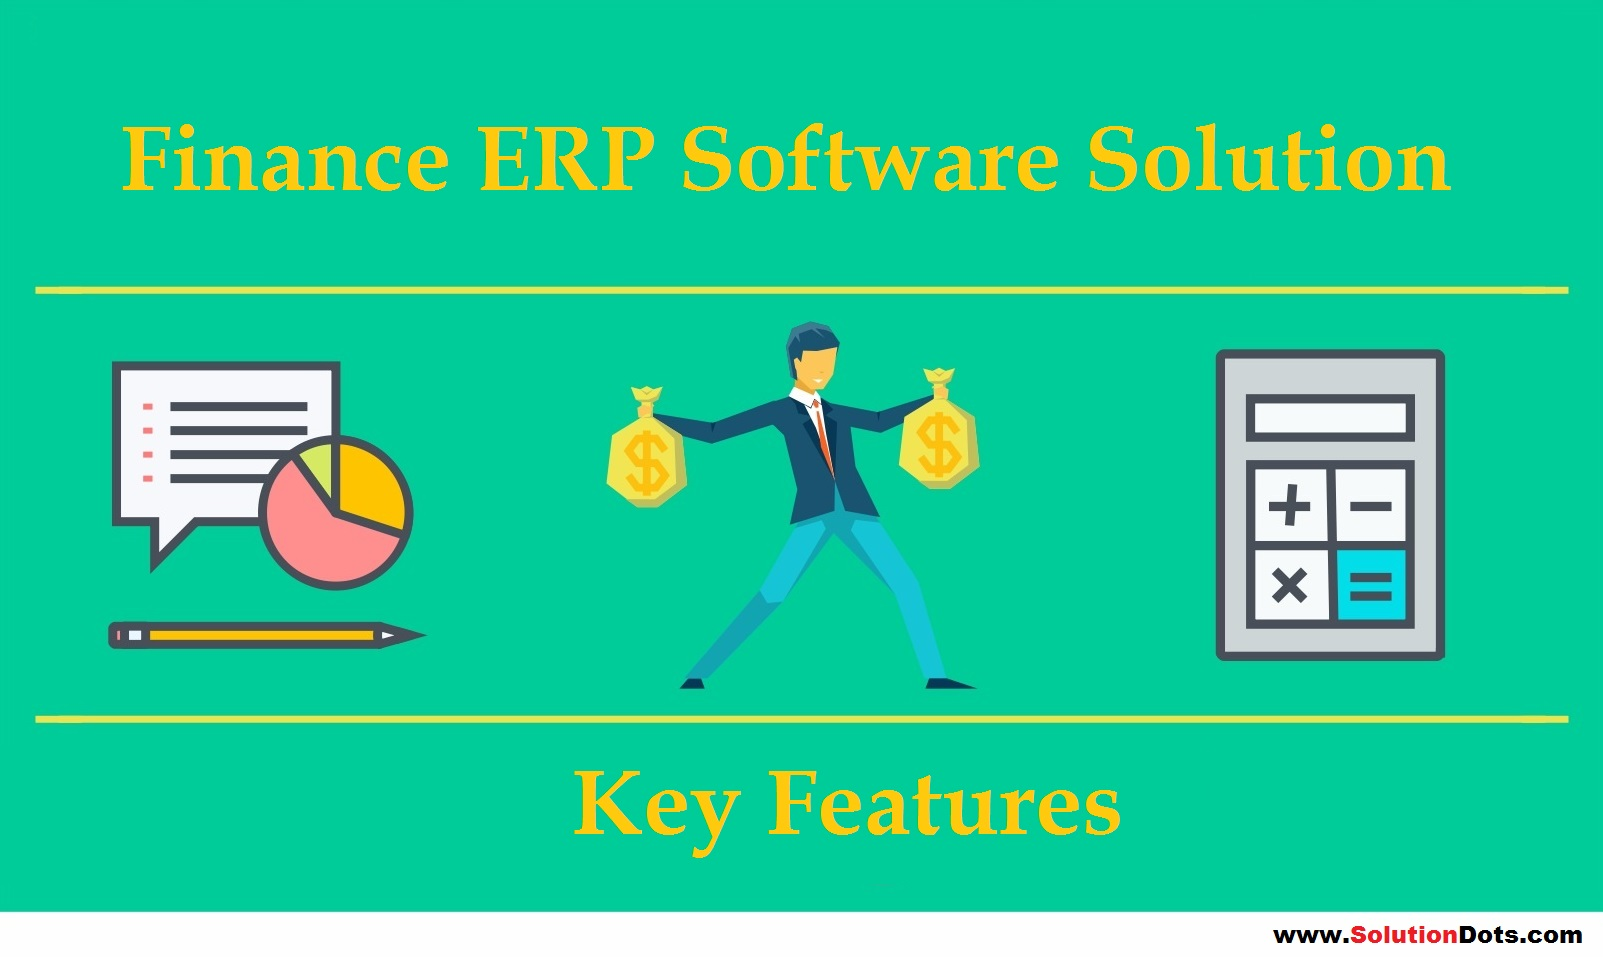 Finance ERP Software Solution and Key Features